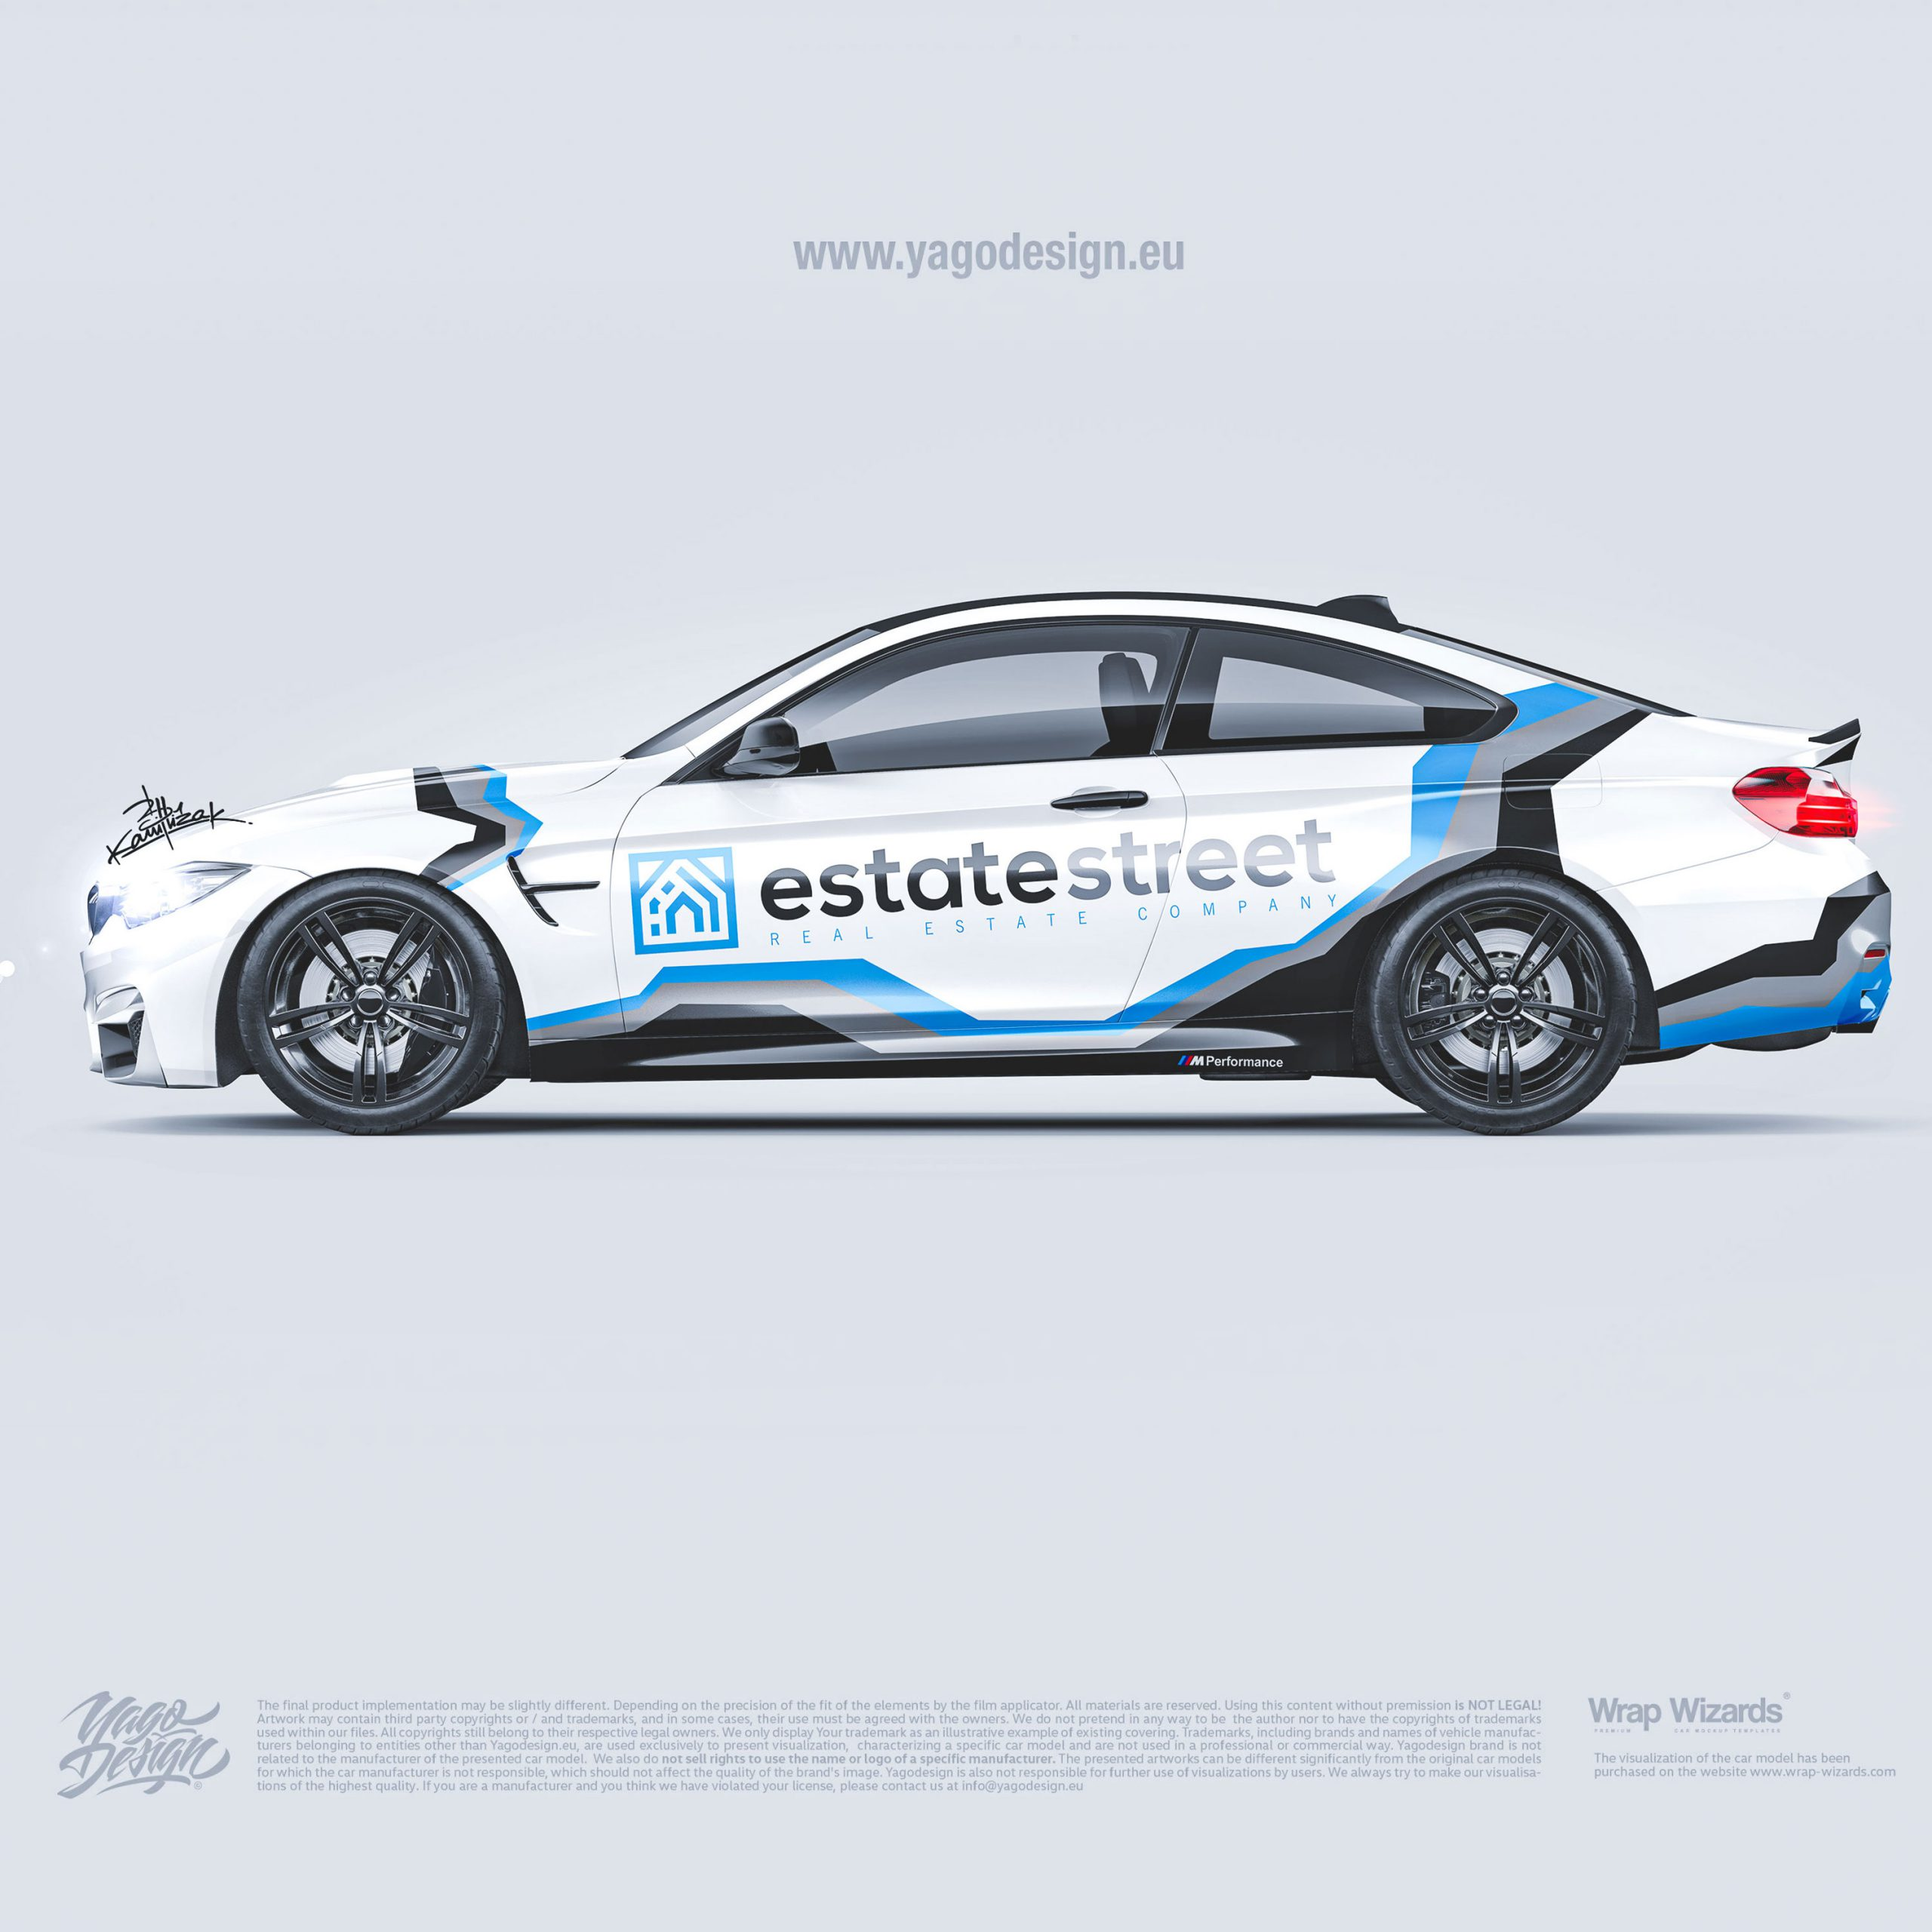 BMW-F40–by-Yagodesign-Livery-Design-Car-wrapping-studio